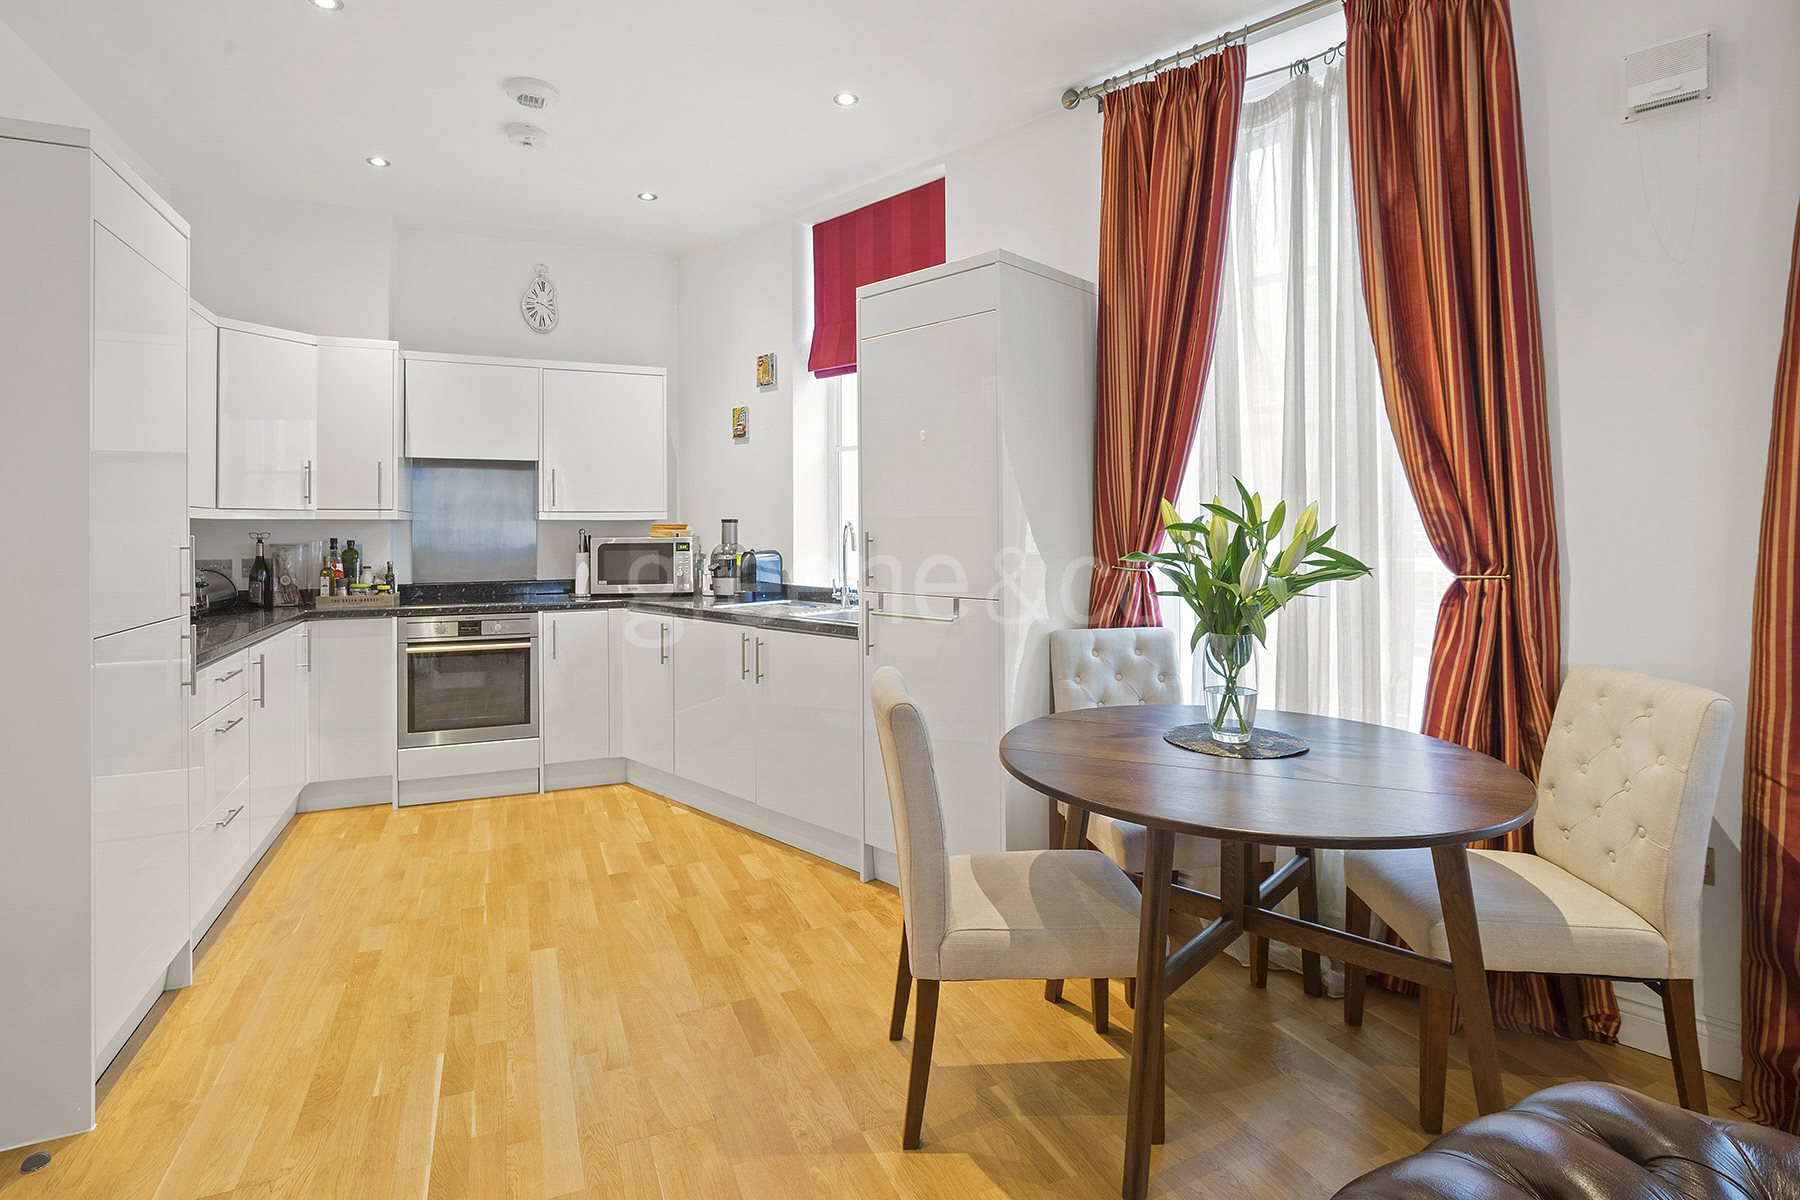 2 Bedrooms Flat for sale in West End Lane, London, NW6